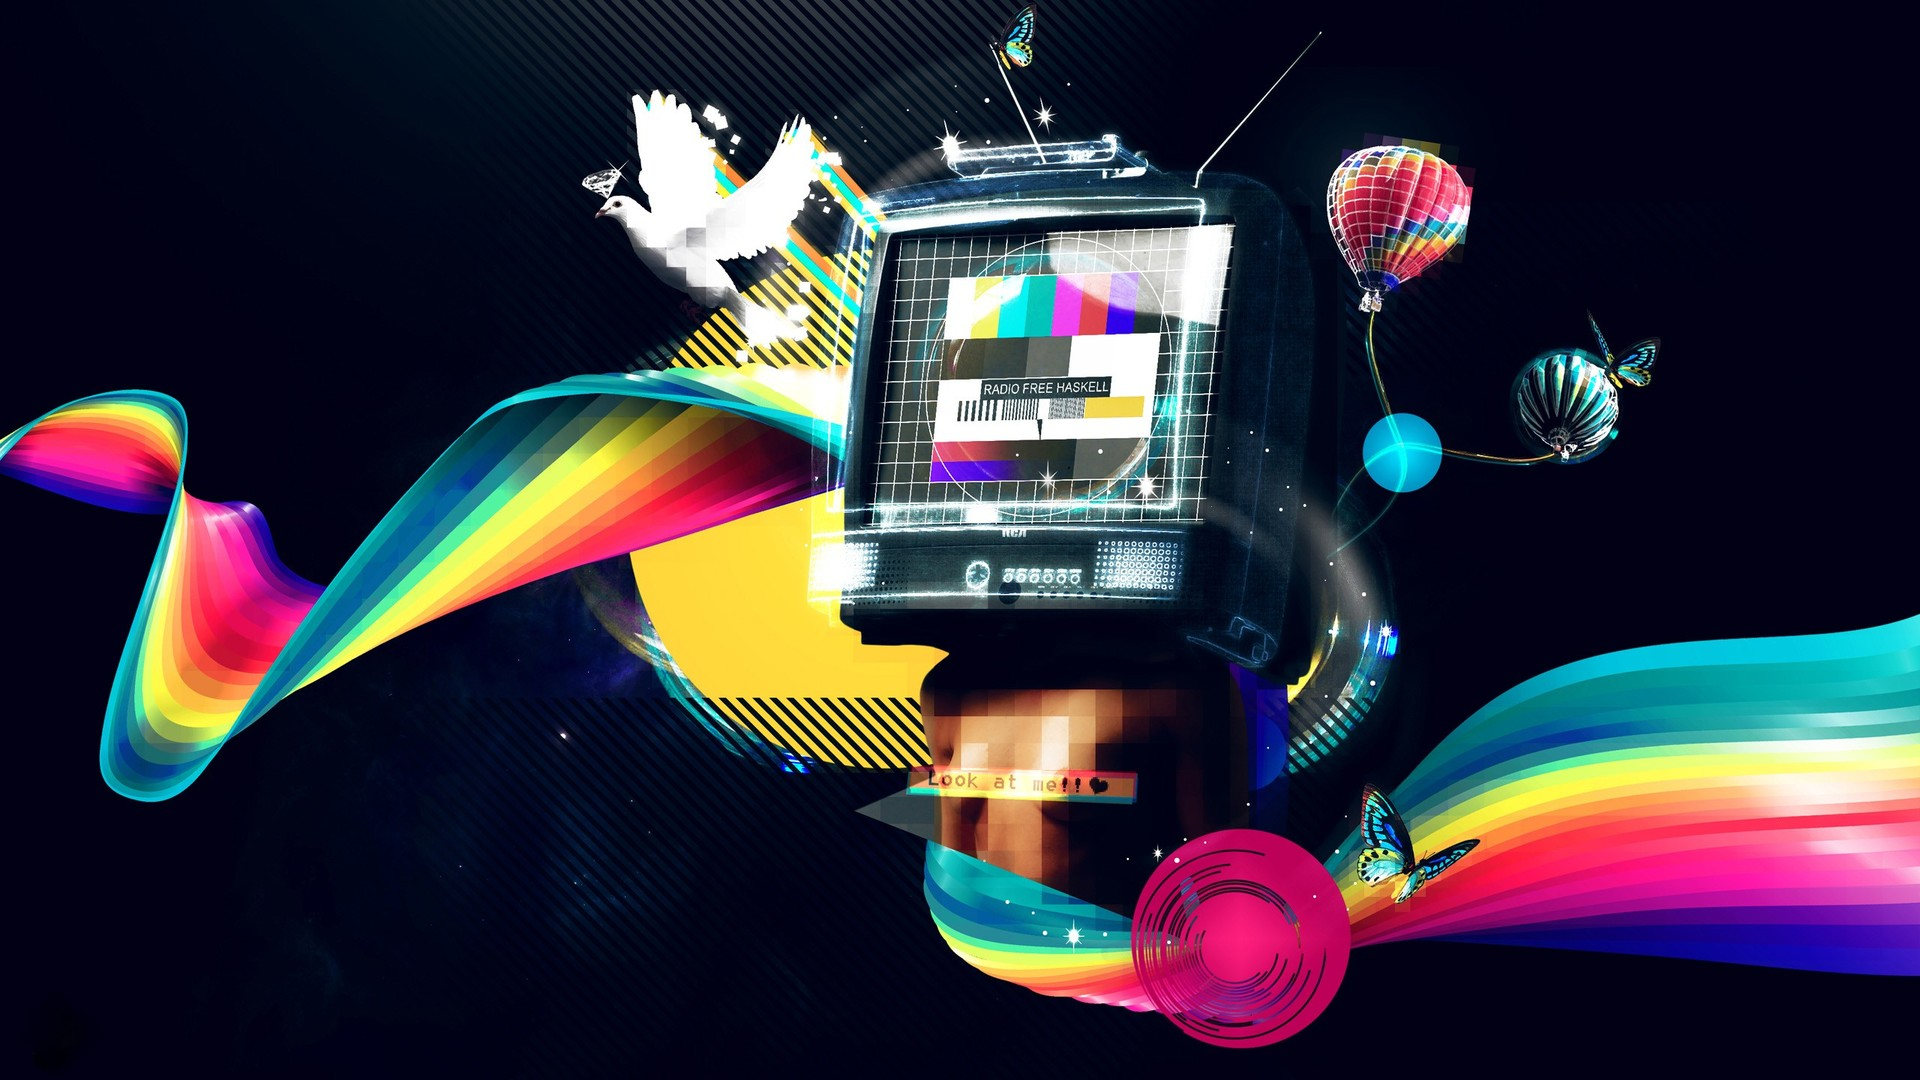 retro-television-surrounded-by-a-rainbow-digital-art-hd-wallpaper-1920x1080-4175.jpg